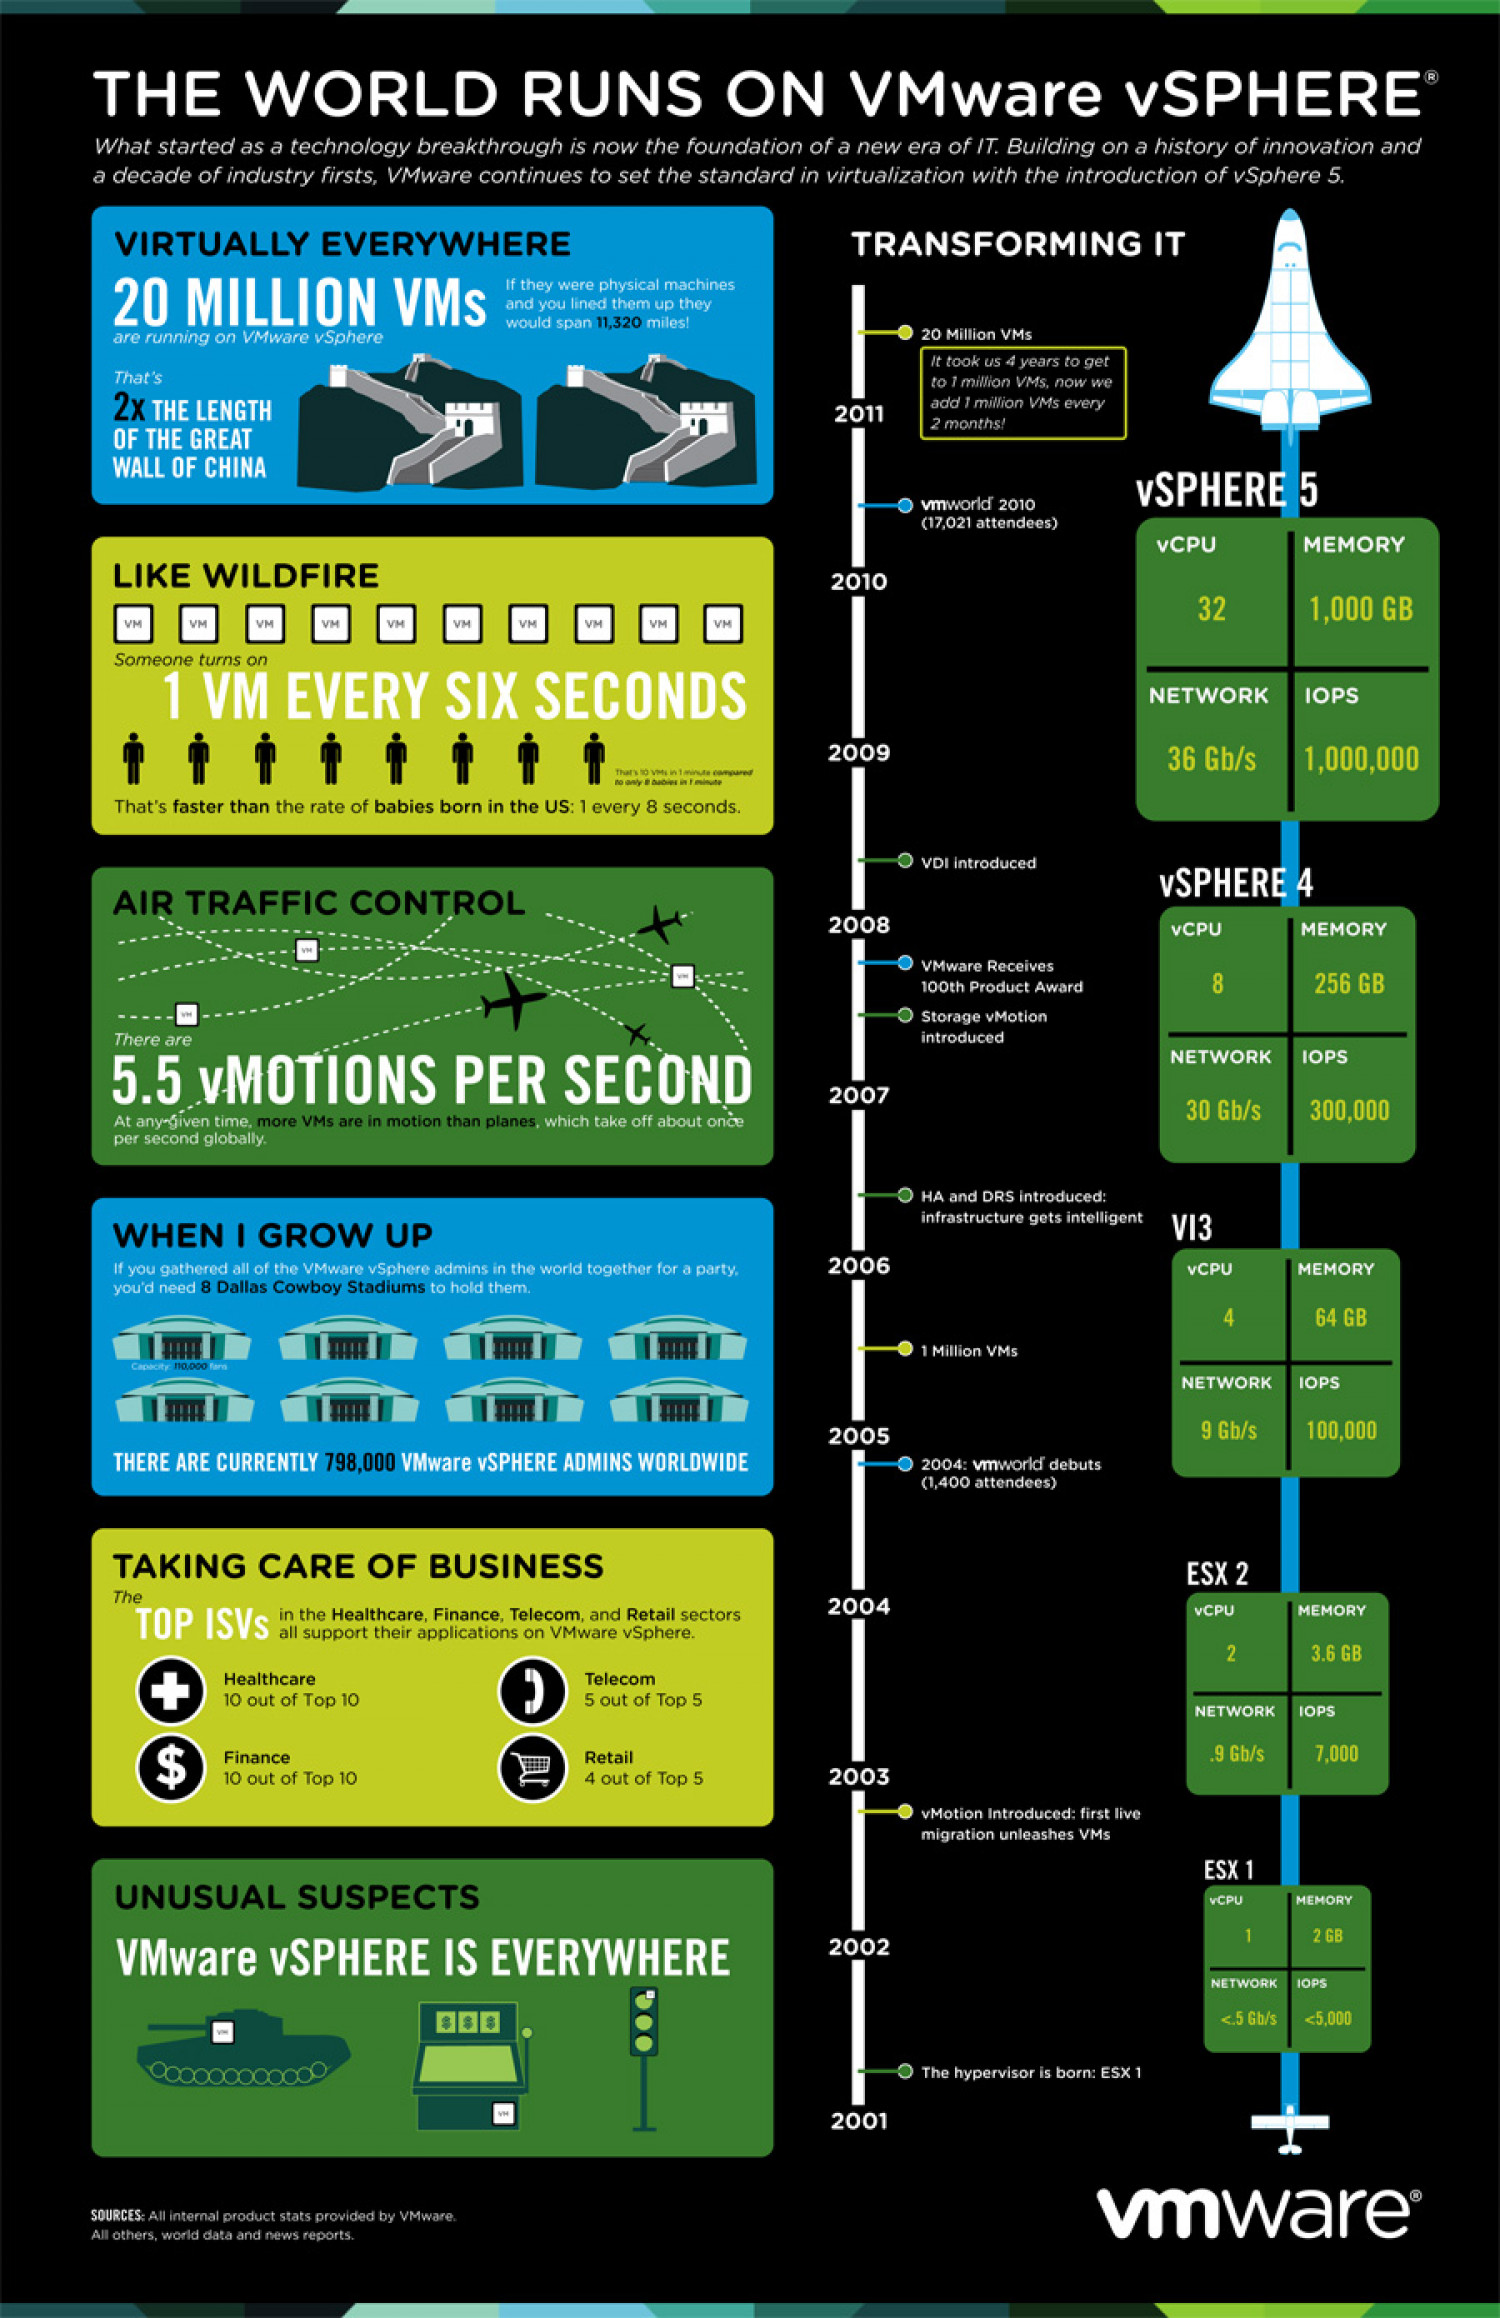 The Worlds Runs on VMware vSphere Infographic